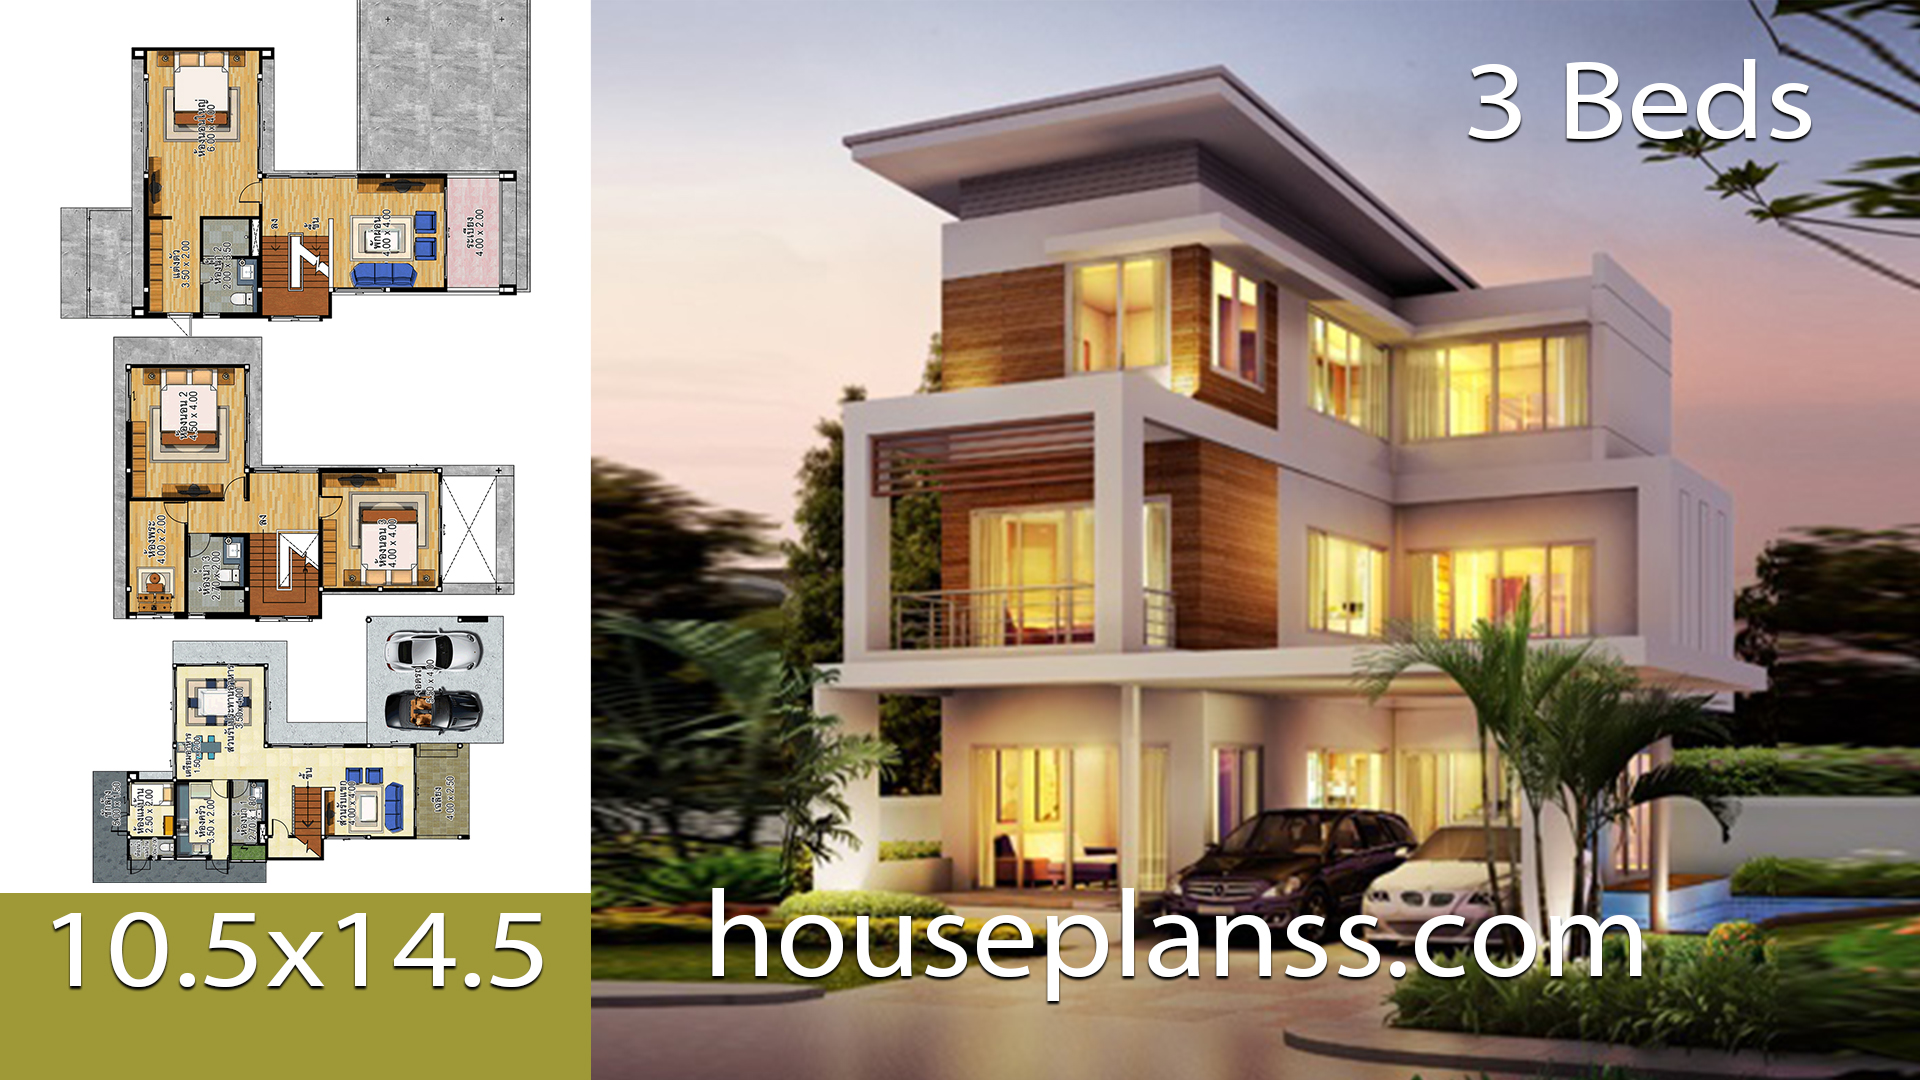 House design idea 10.5×14.5 with 3 bedrooms